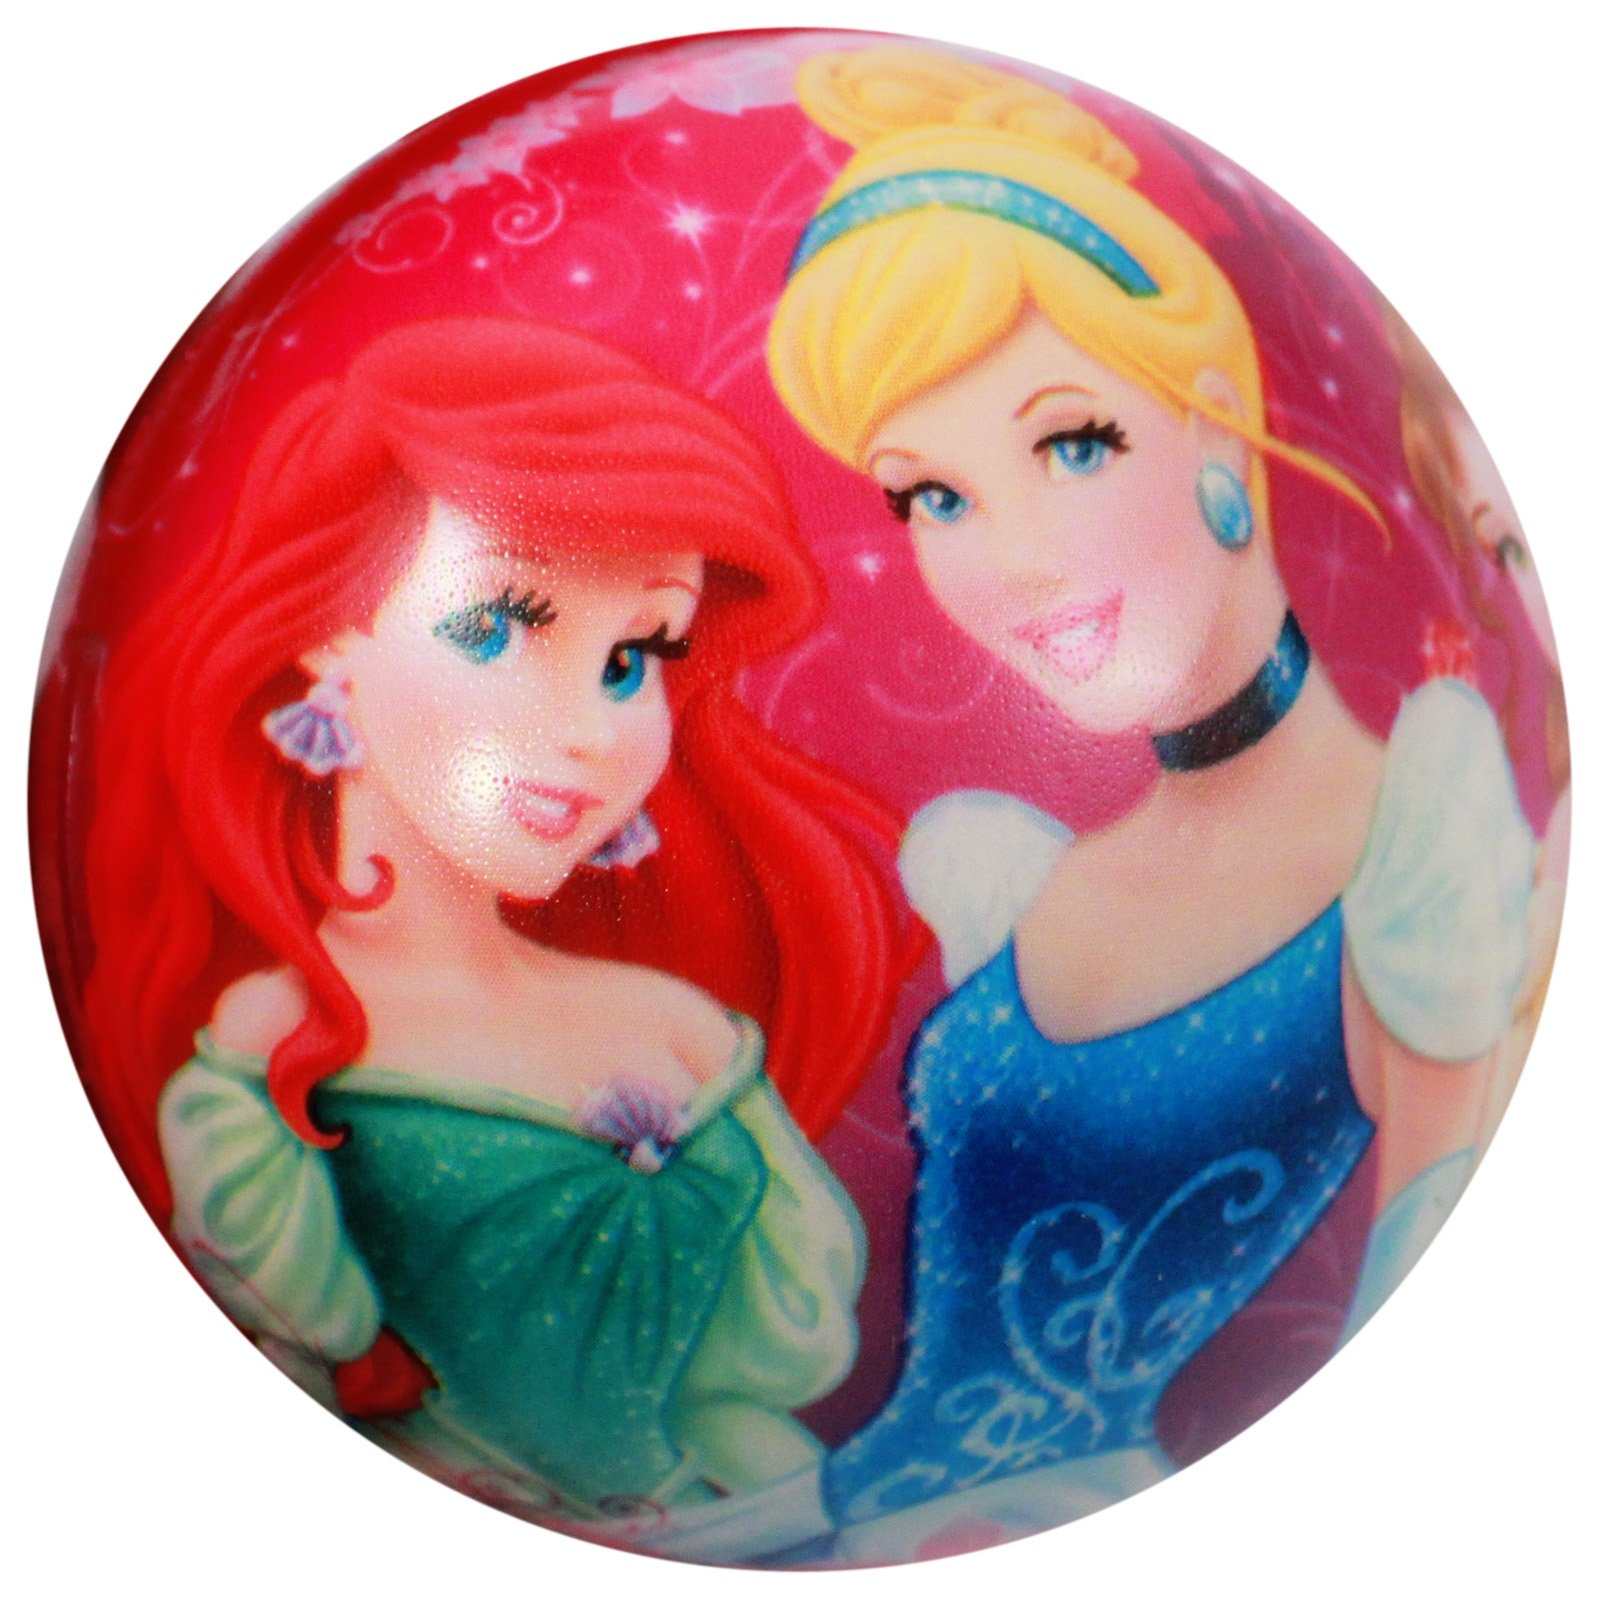 Disney Princess Cinderella Ariel Belle Girls Foam Bouncy Ball Indoor Play Toy